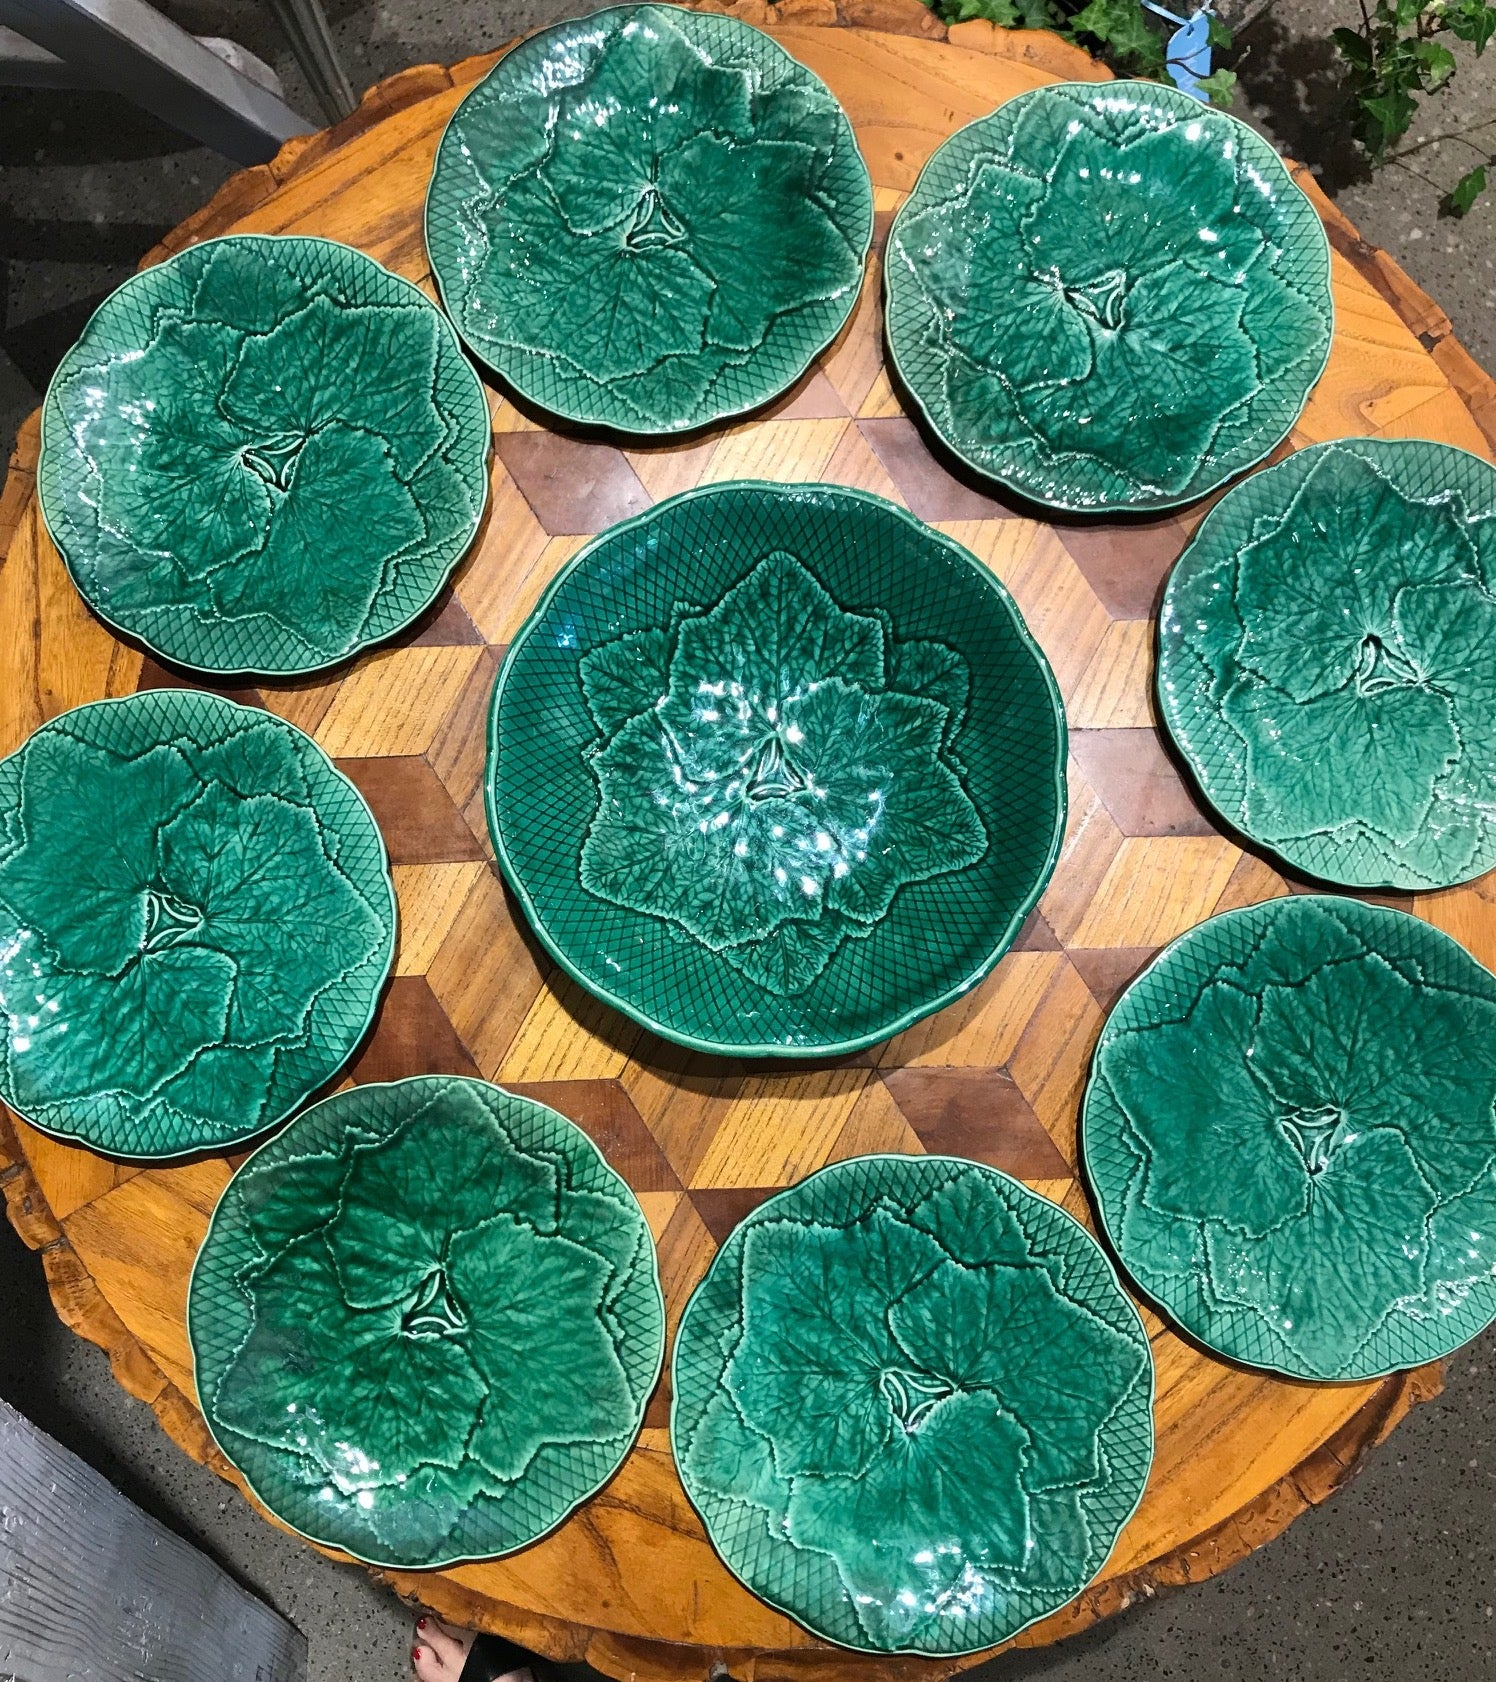 SOLD A beautiful vine-pattern dark green faience salad setting, French Circa 1900